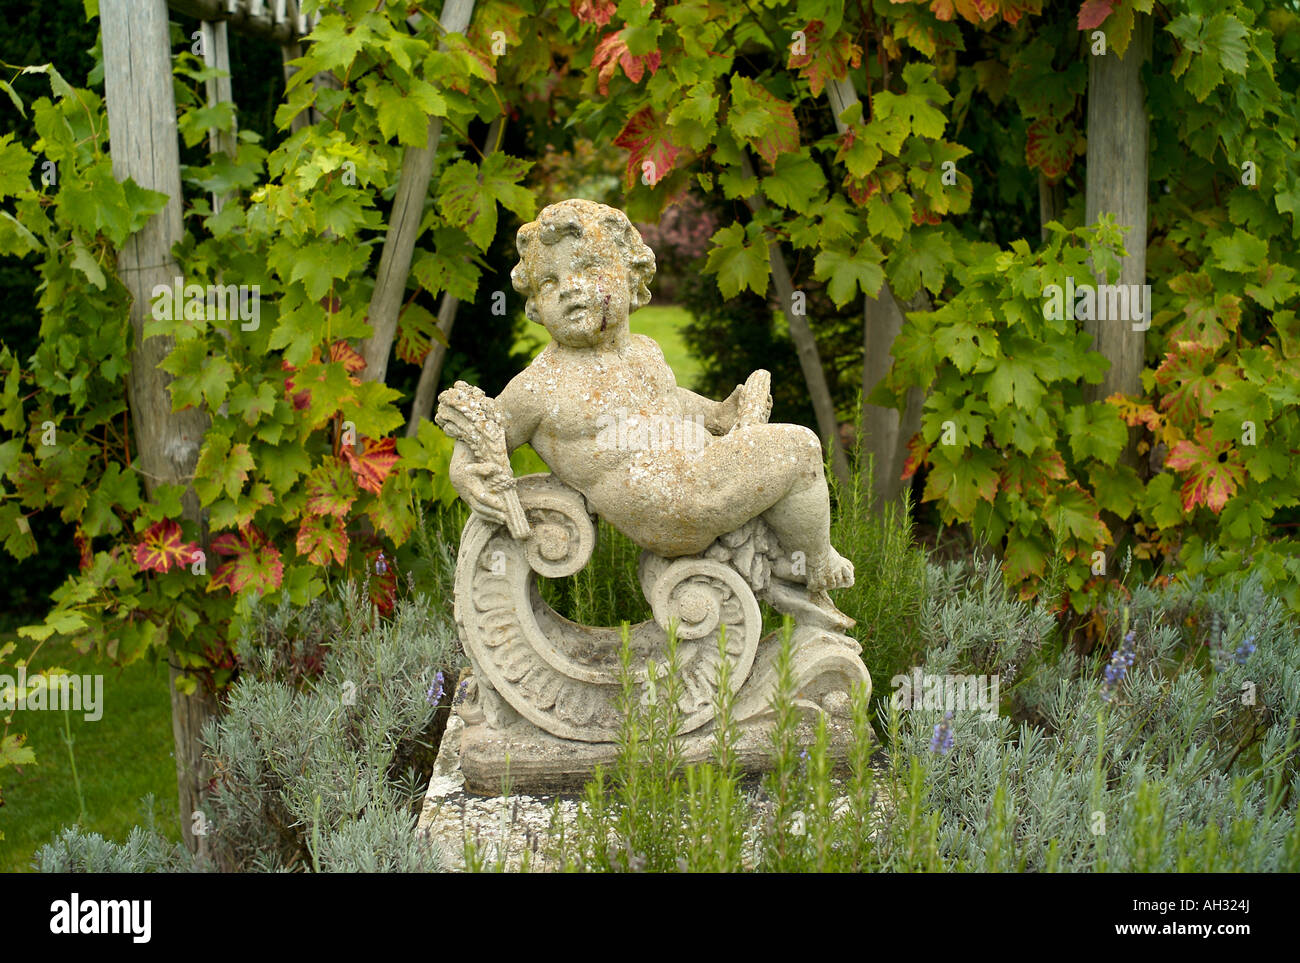 Garden Statue At Herstmonceux In East Sussex UK   Stock Image